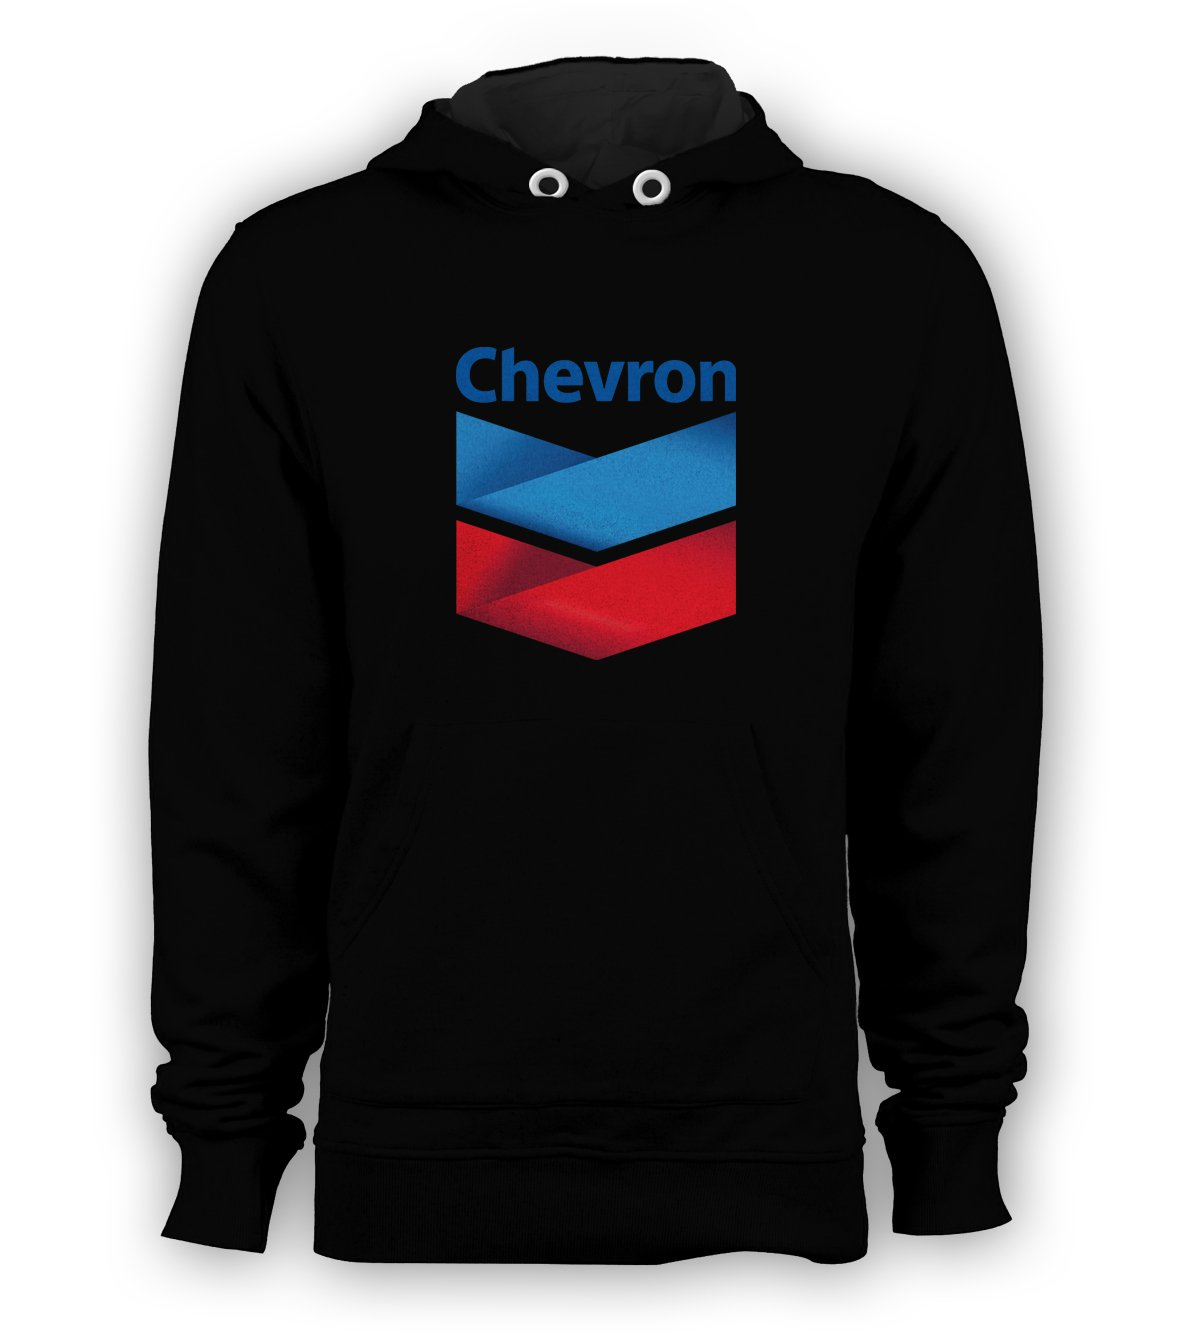 Chevron Logo Pullover Hoodie Men Sweatshirts Size S to 3XL New Black